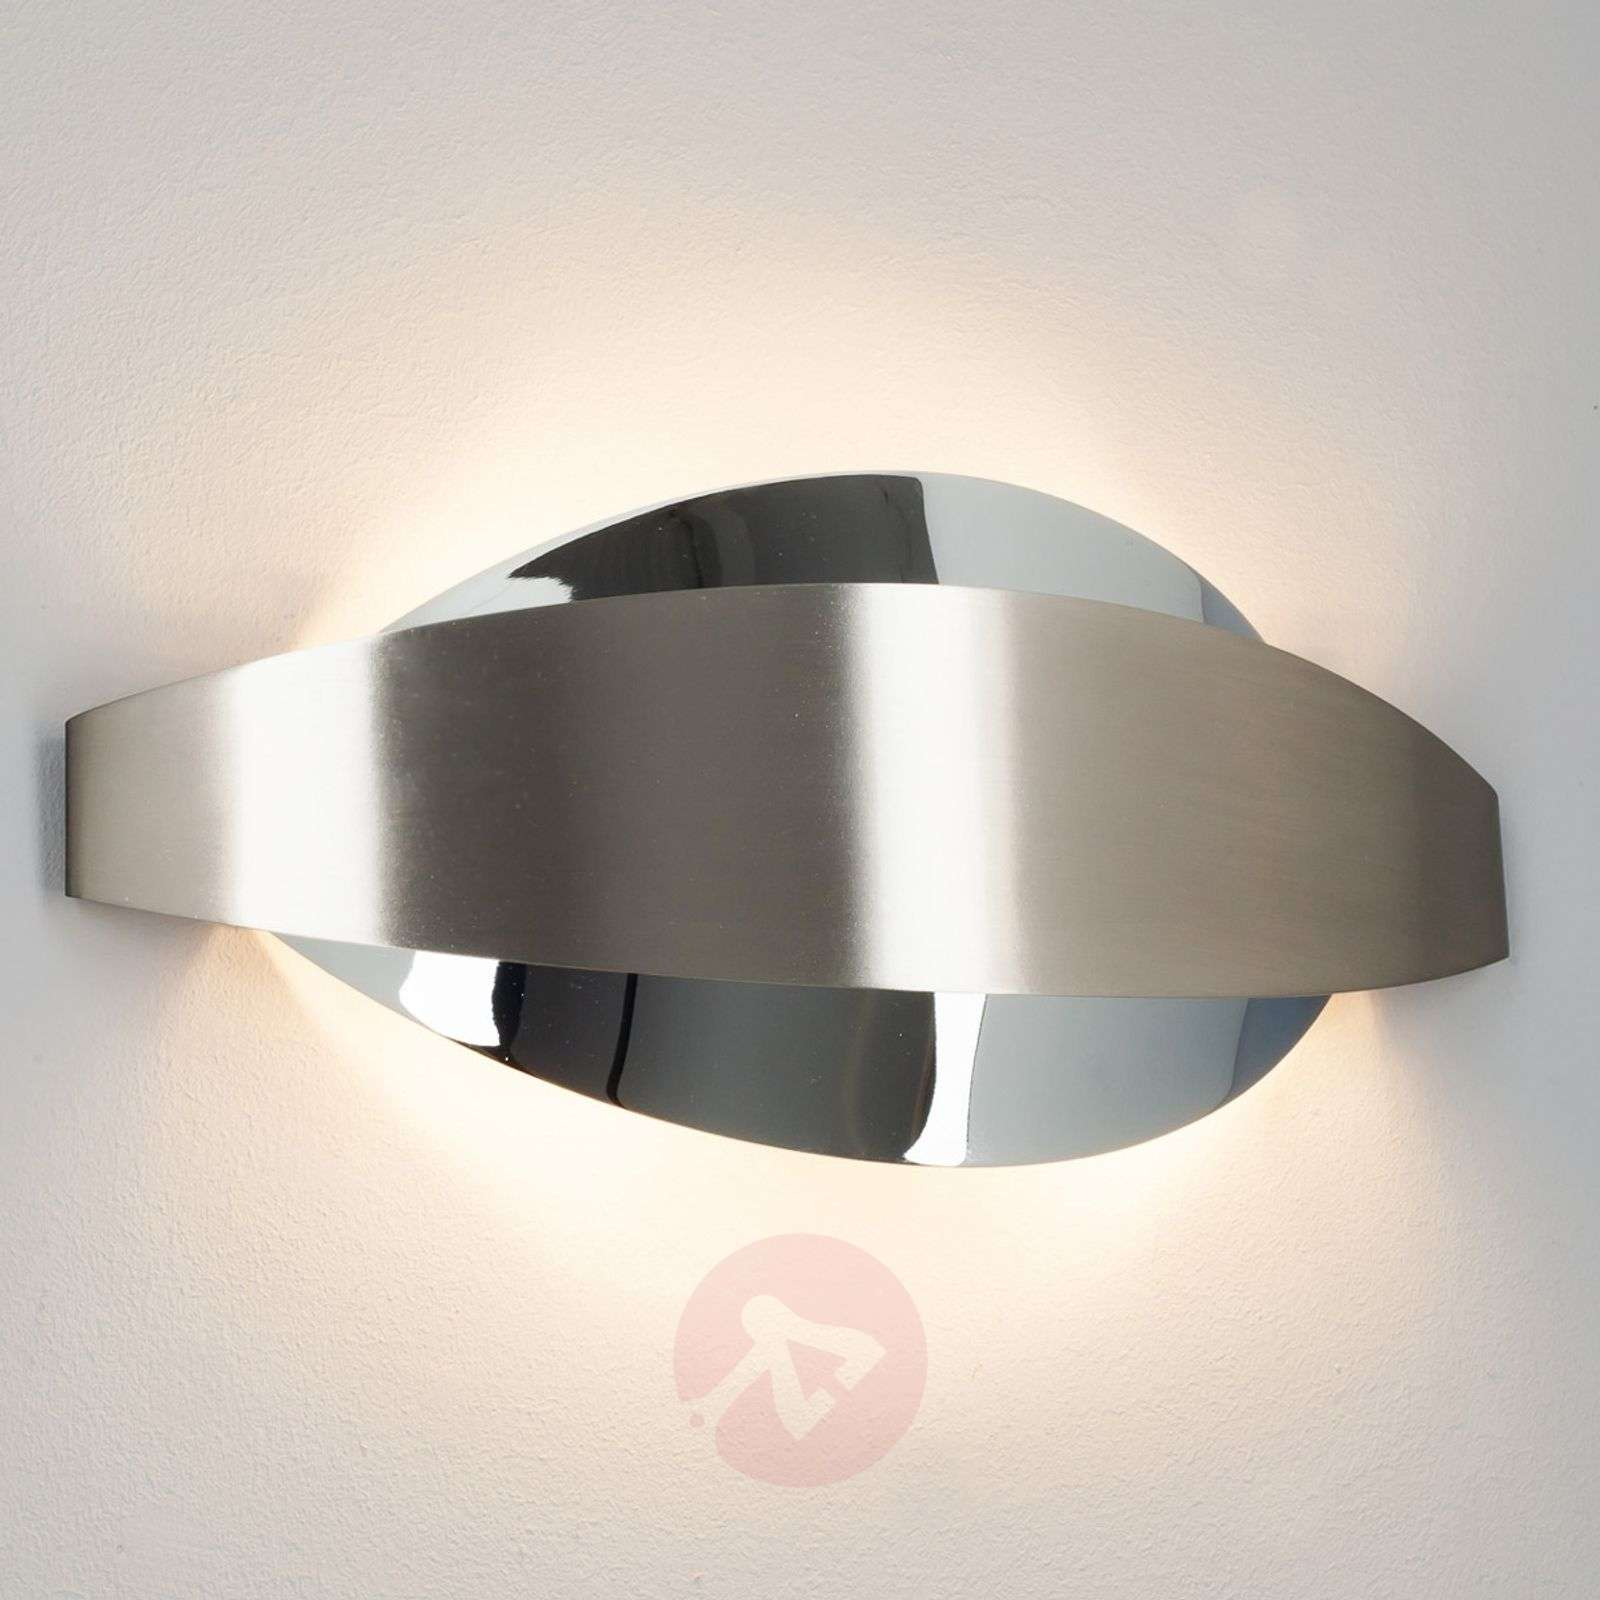 Extravagant metal wall light Lonna with G9 LEDs-9620574-01